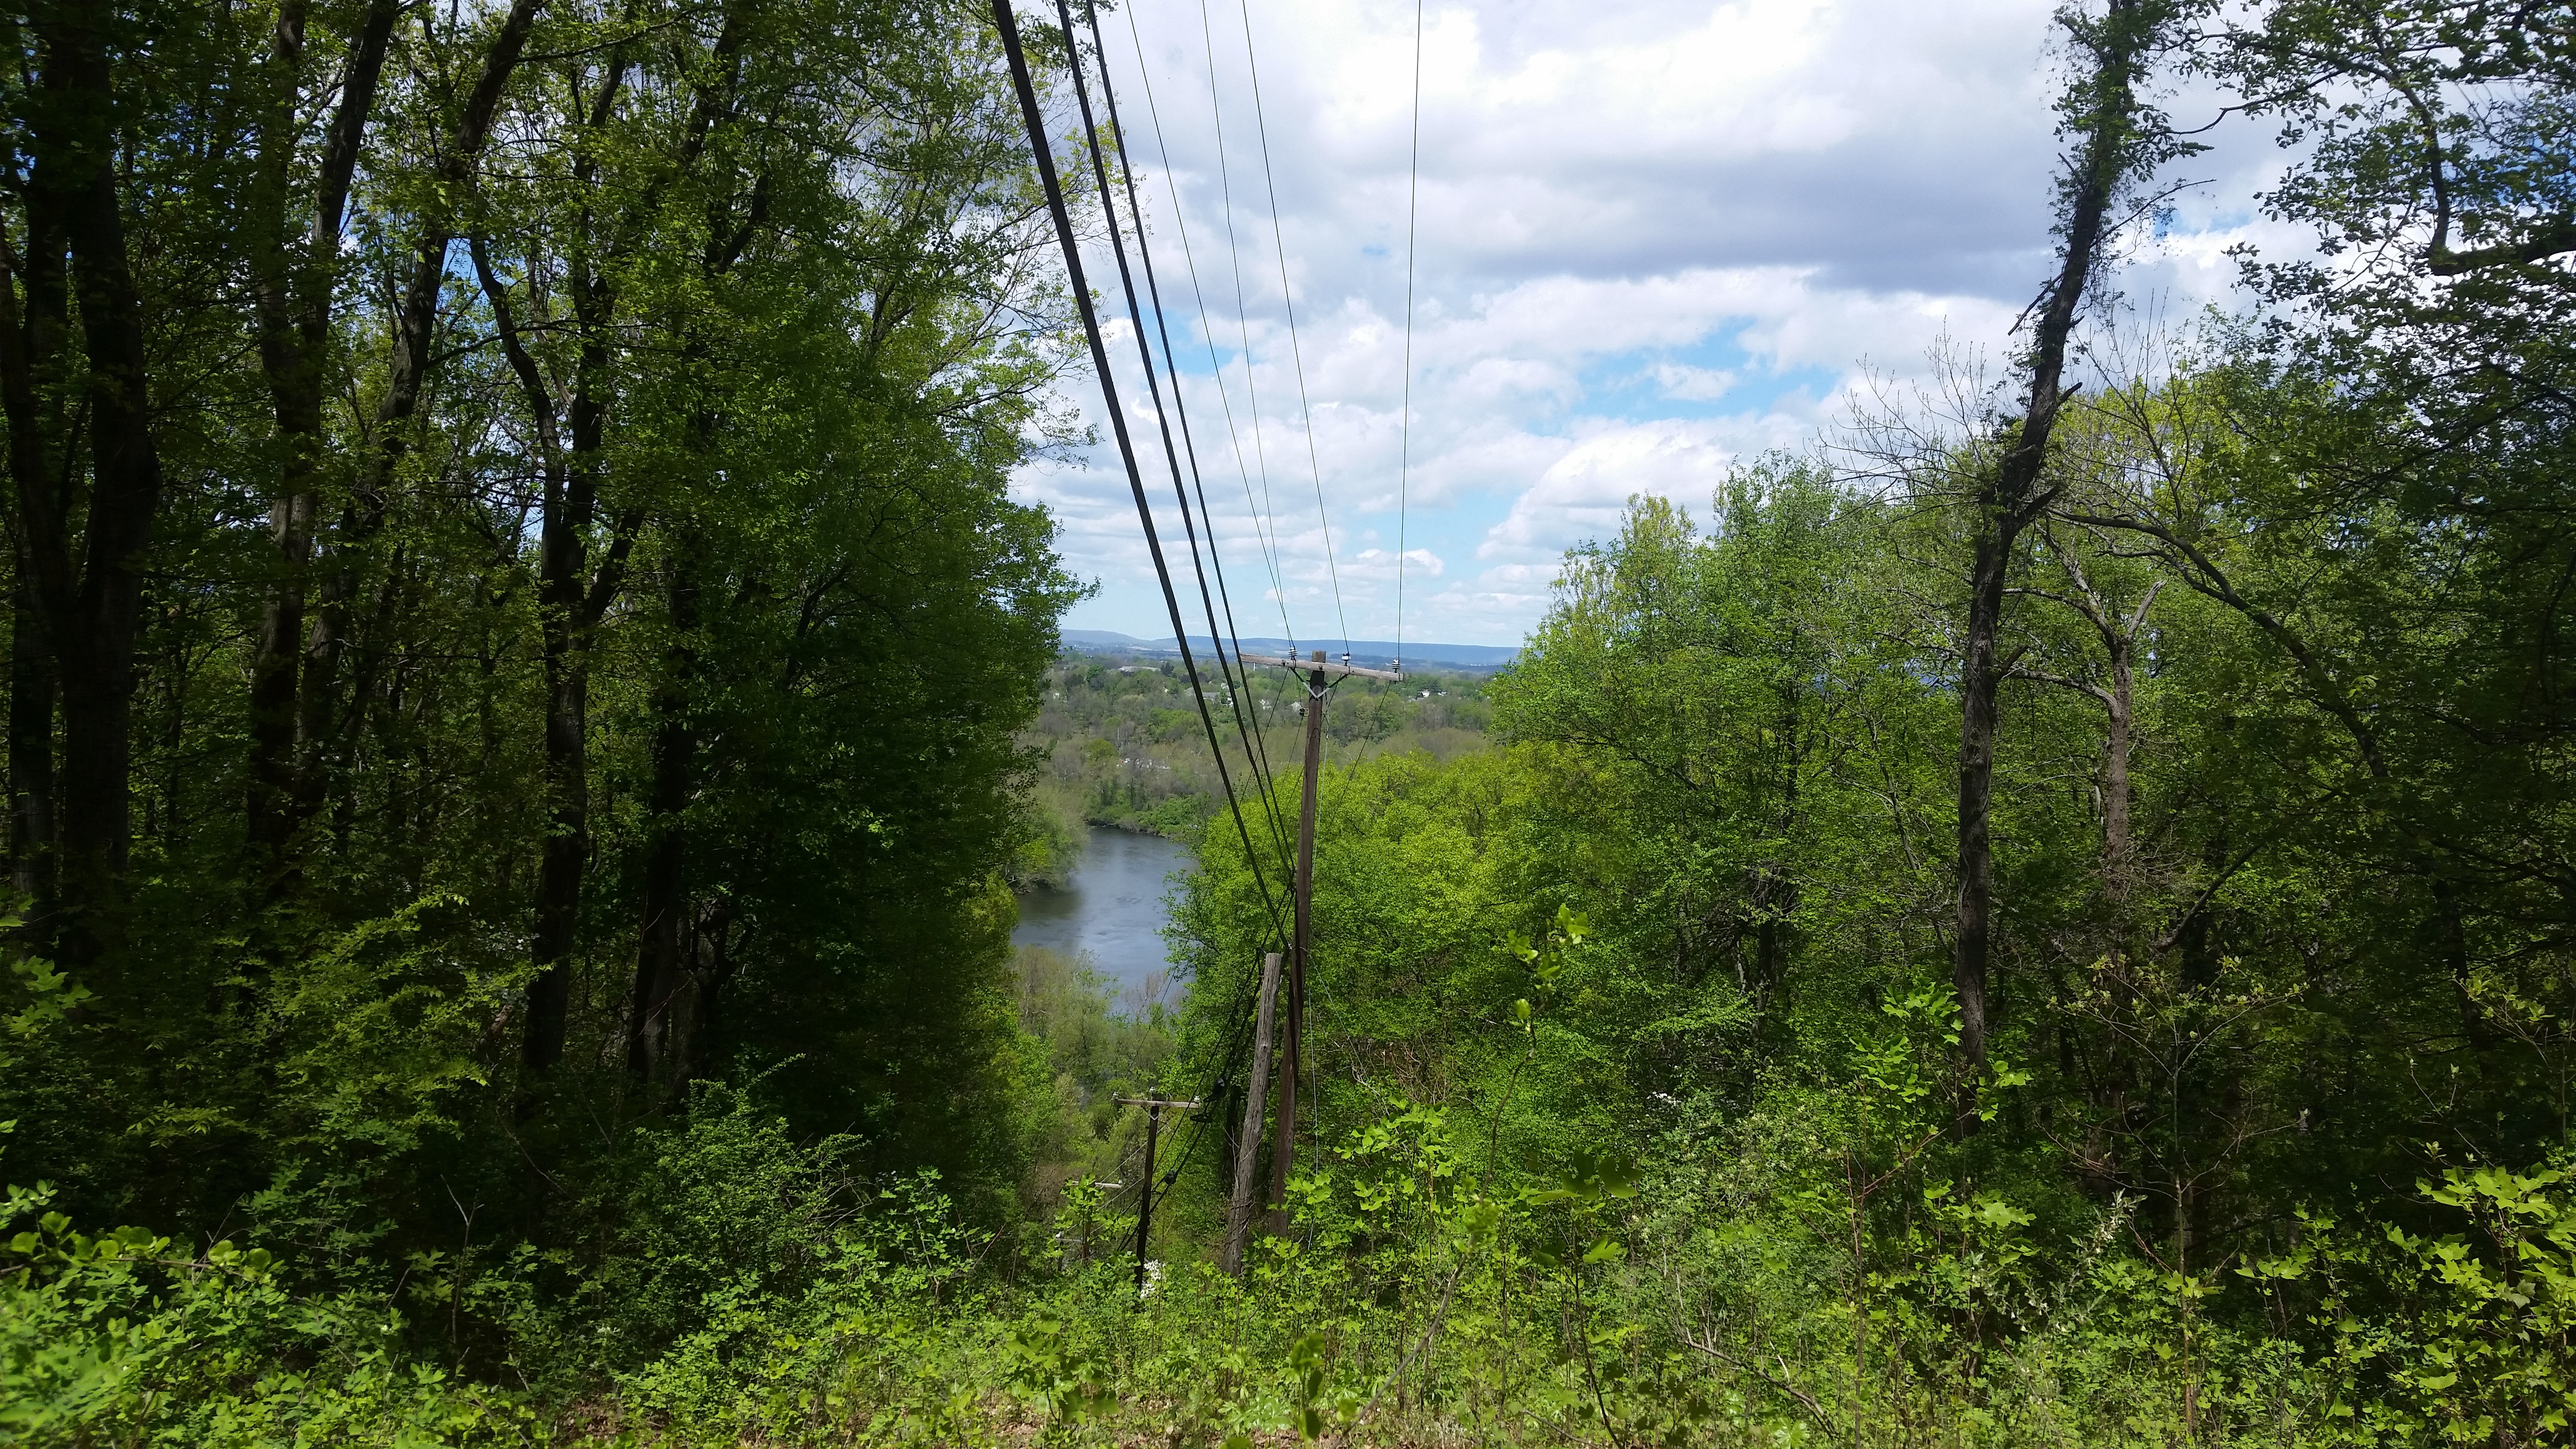 View of river and valley through trees.